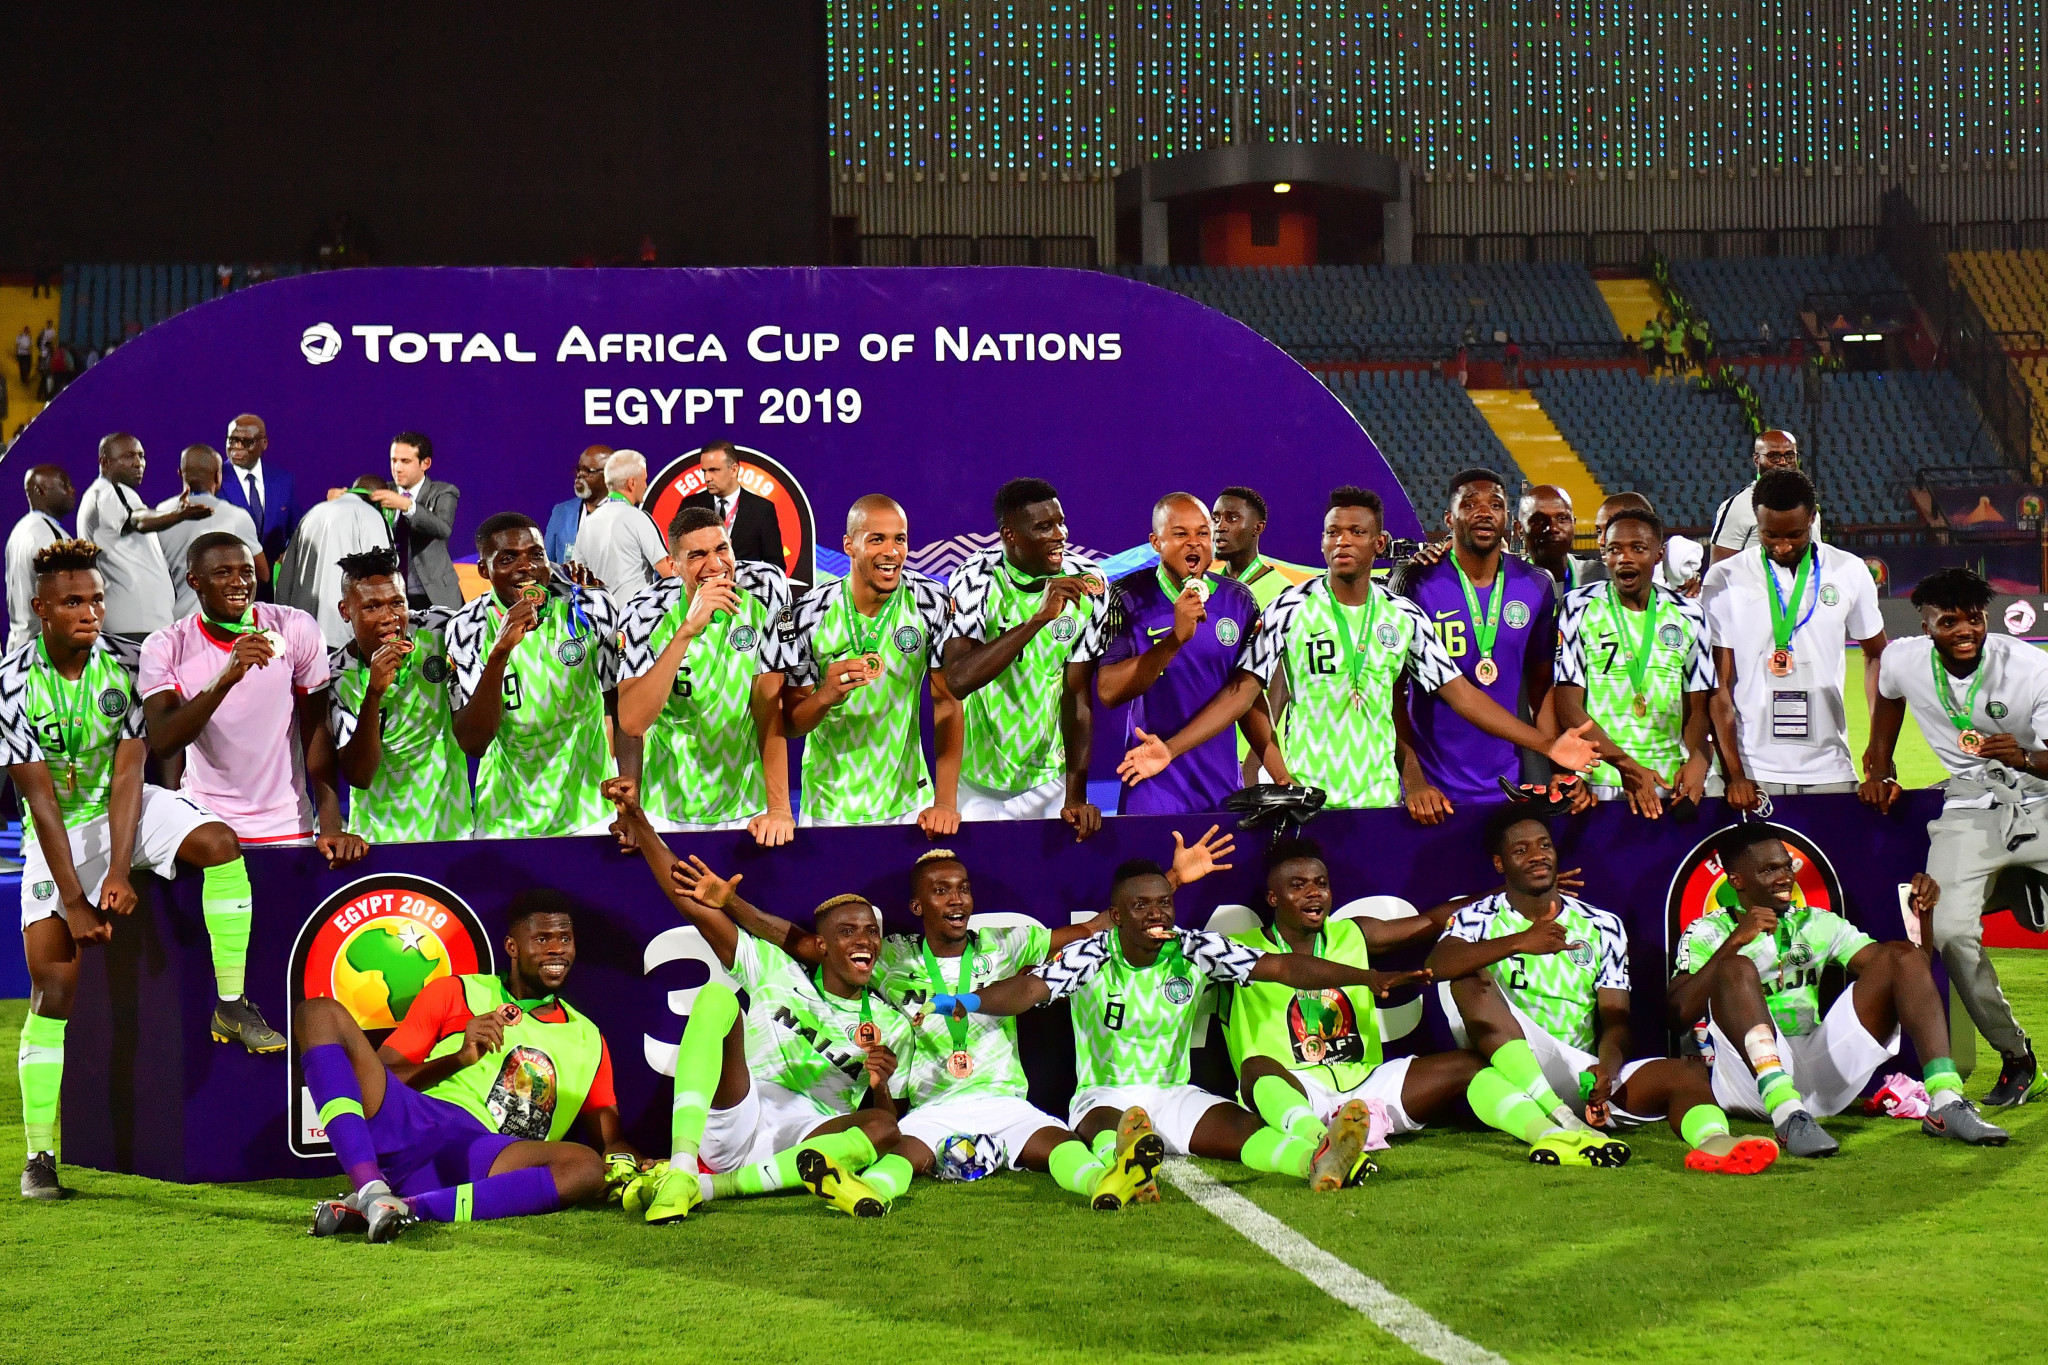 Nigeria were appearing in their eighth bronze medal playoff in the Africa Cup of Nations and maintained their remarkable record of having won on each occasion with their victory in Cairo ©Getty Images